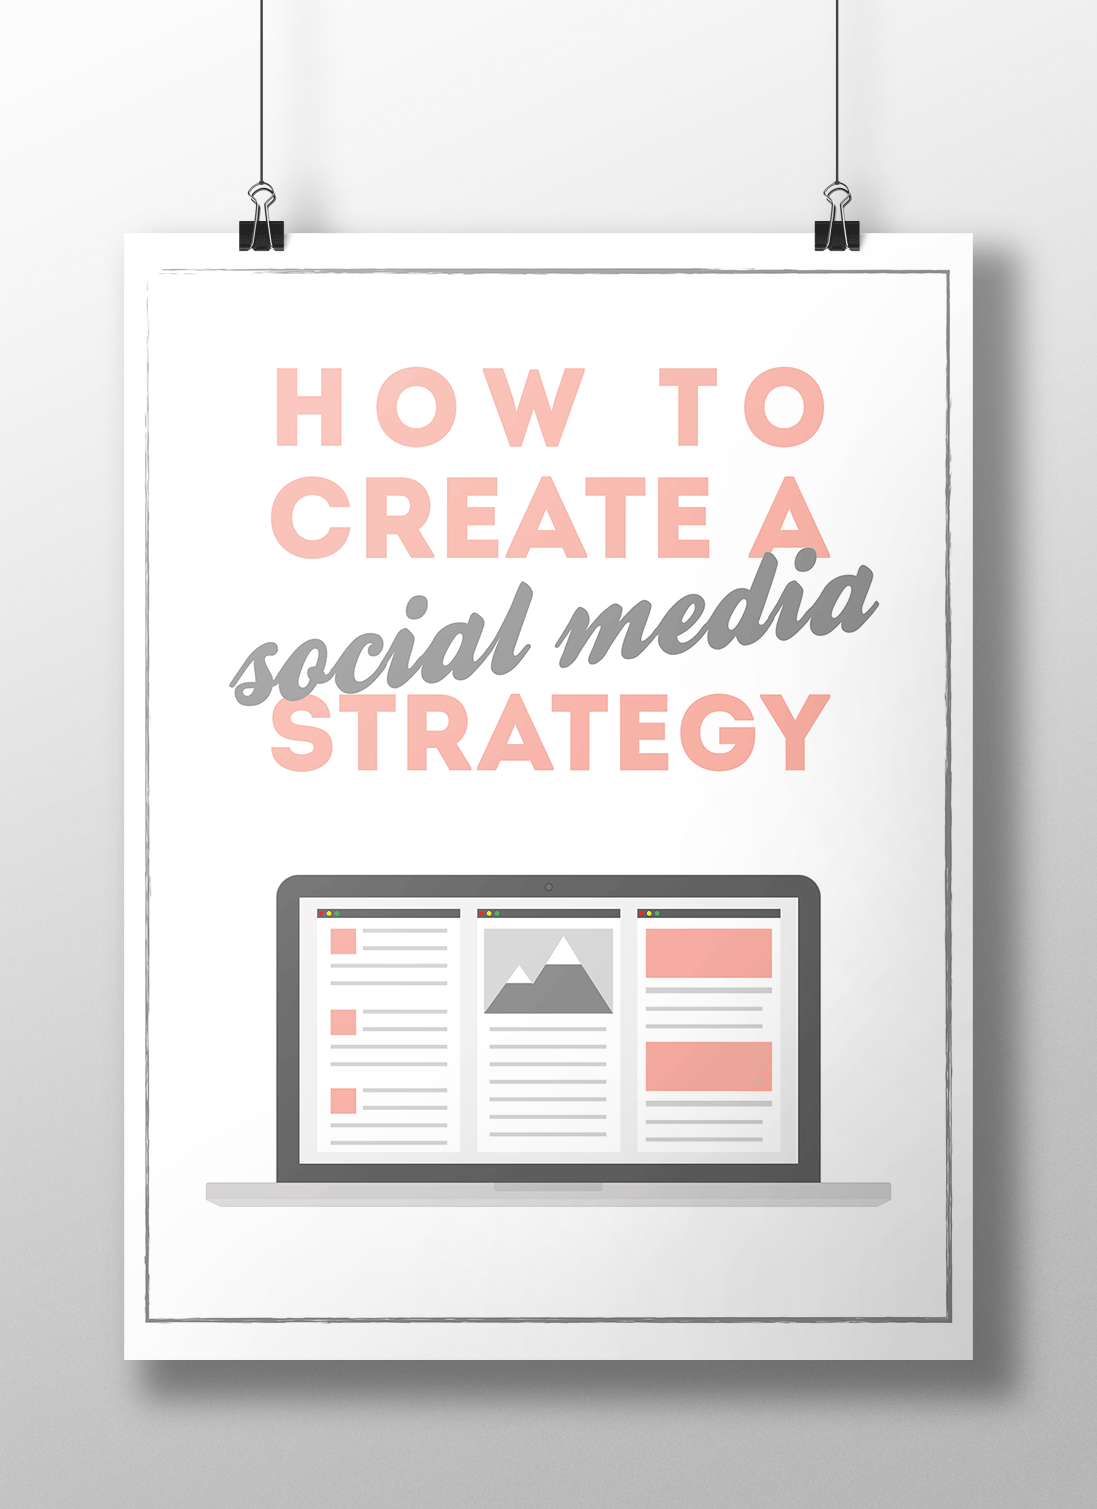 How to Create a Social Media Strategy (FREE ebook!)